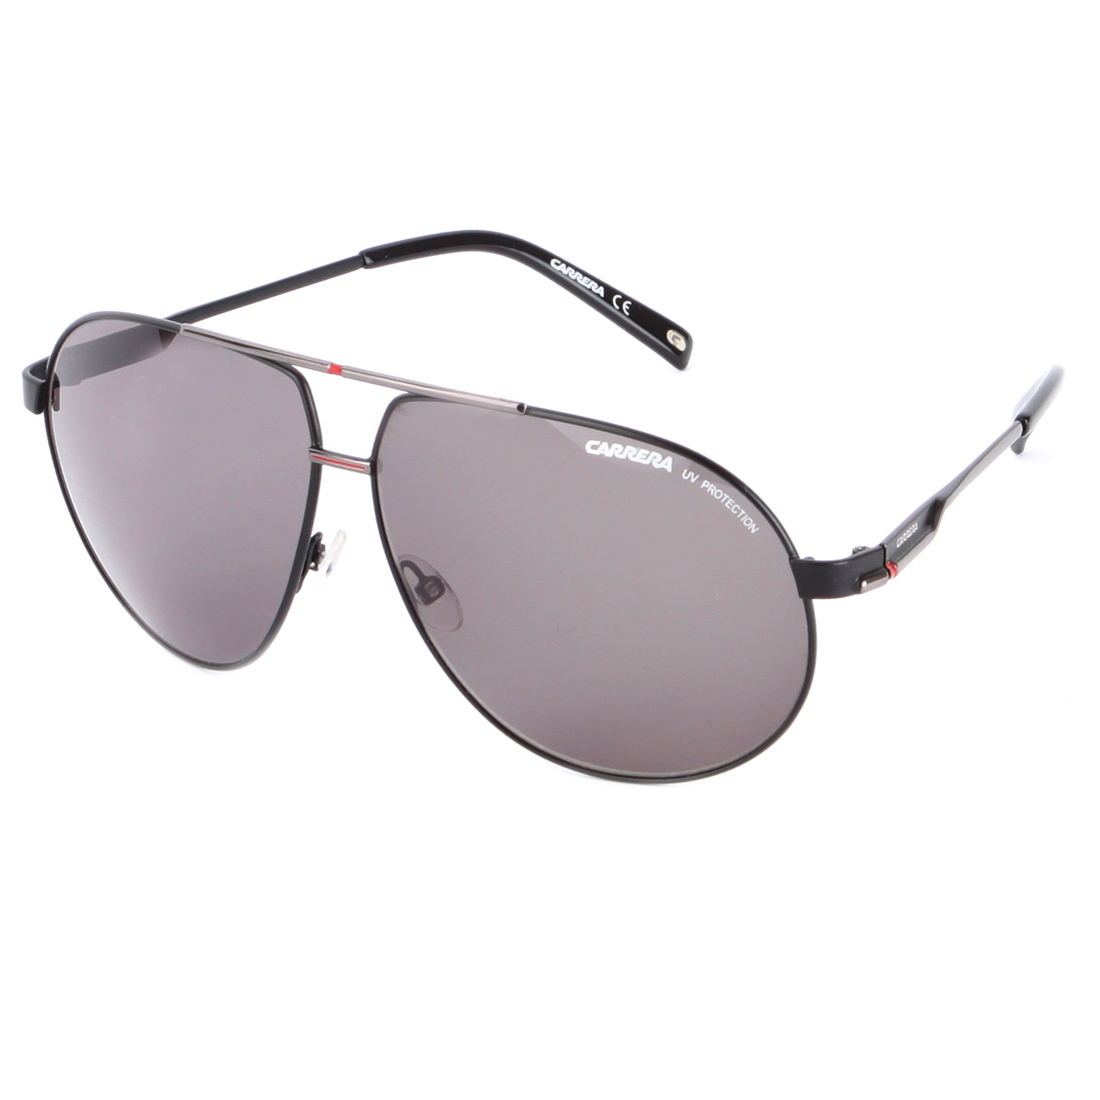 Carrera 6/S 832 Sunglasses - Black